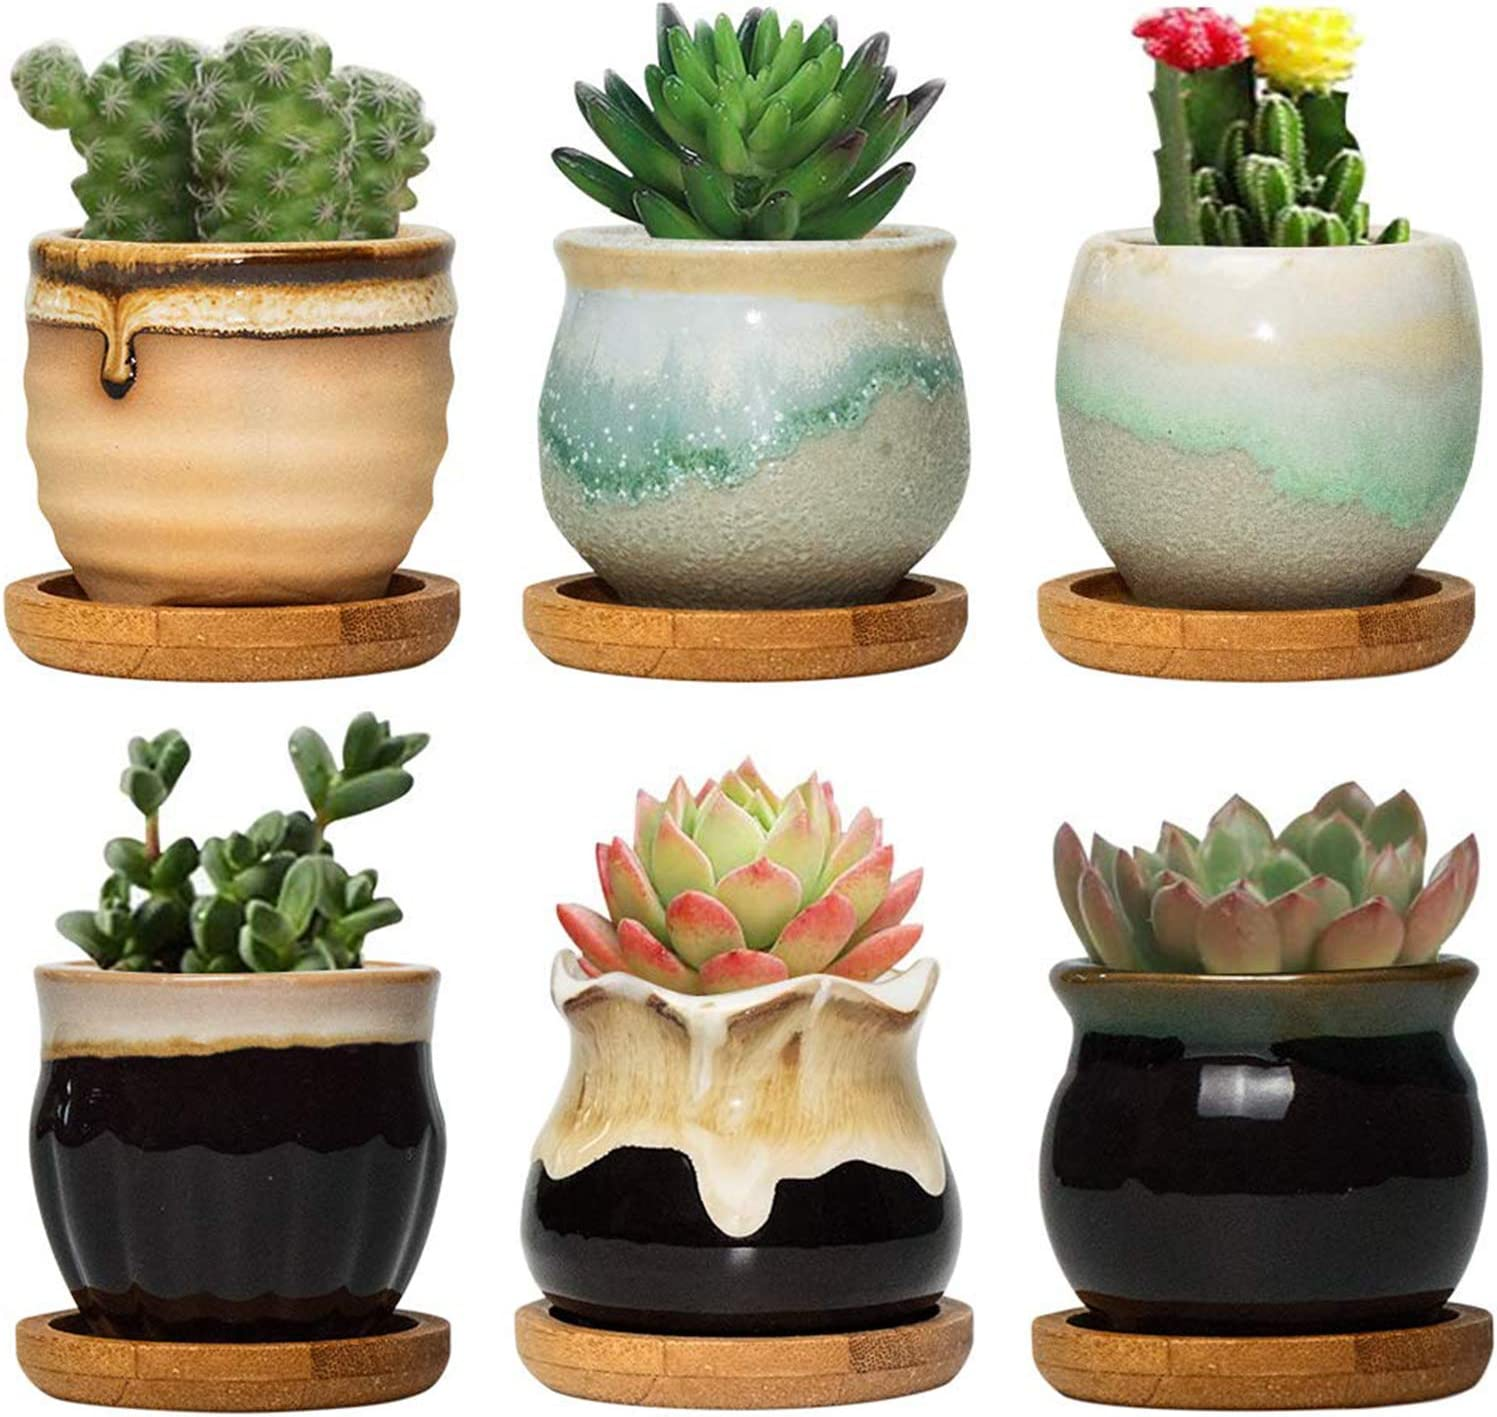 FairyLavie 6.5CM Ceramic Succulent Plant Pot, Rustic Style Cute Little Pots  for Plants, Planter with Bamboo Tray, Perfect for Home Office Decor for  Family Friends Colleague, Set of 6: Amazon.co.uk: Garden &